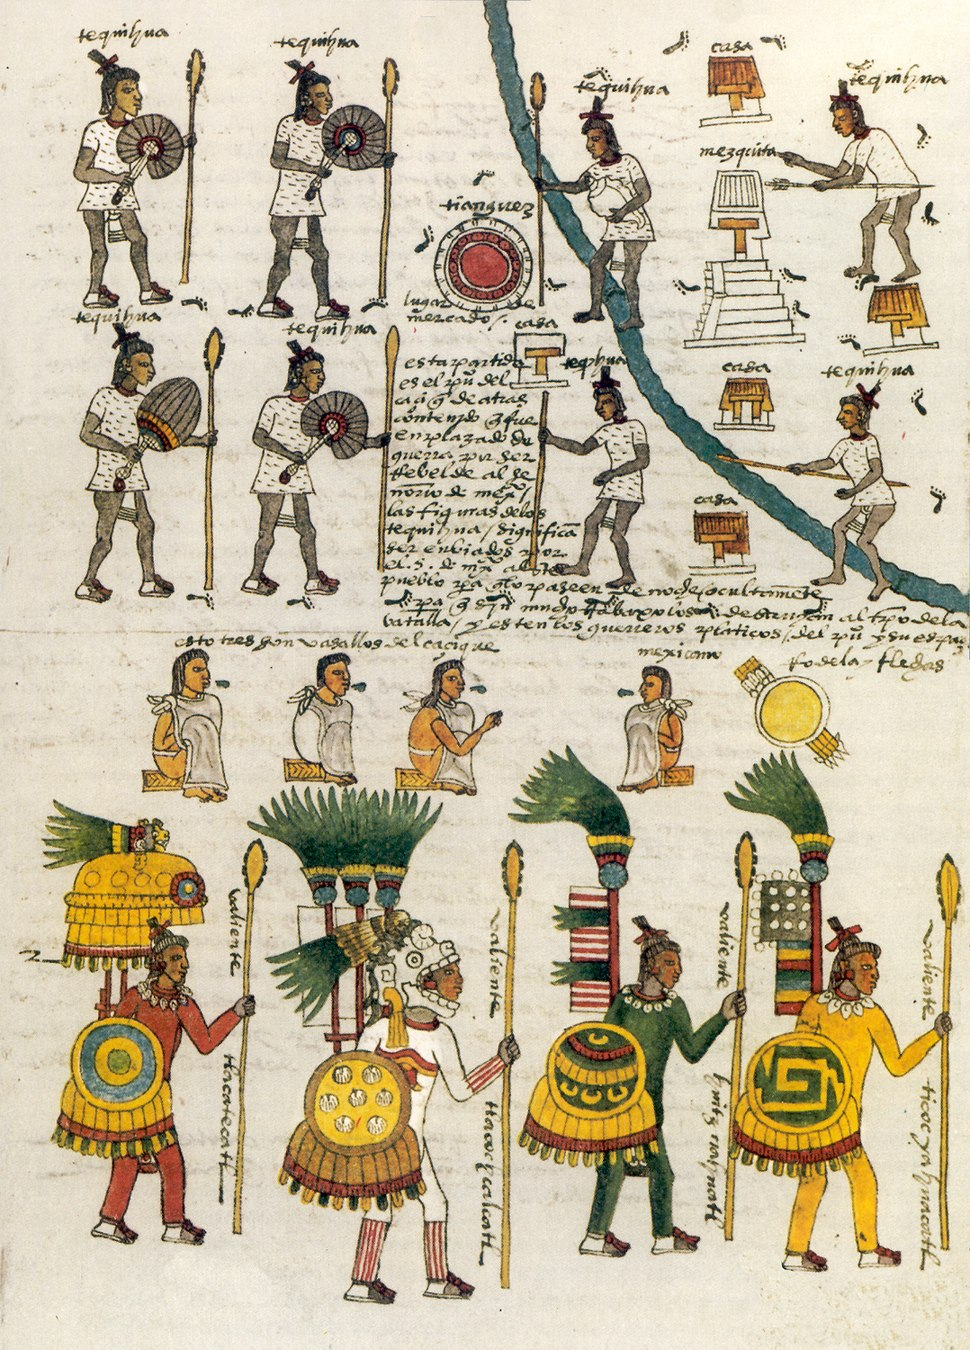 Codex Mendoza folio 67r